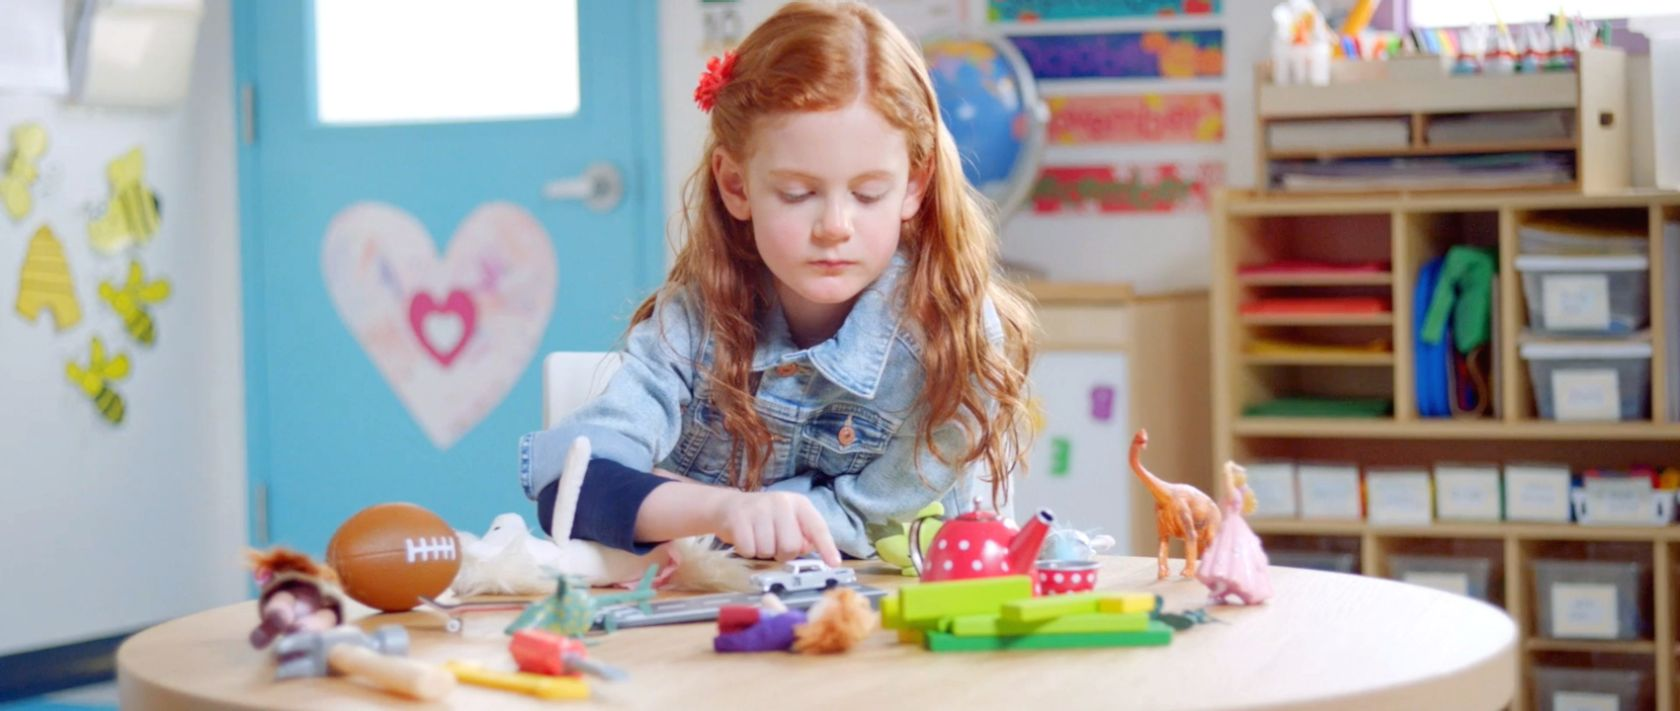 A young girl is playing with toys.